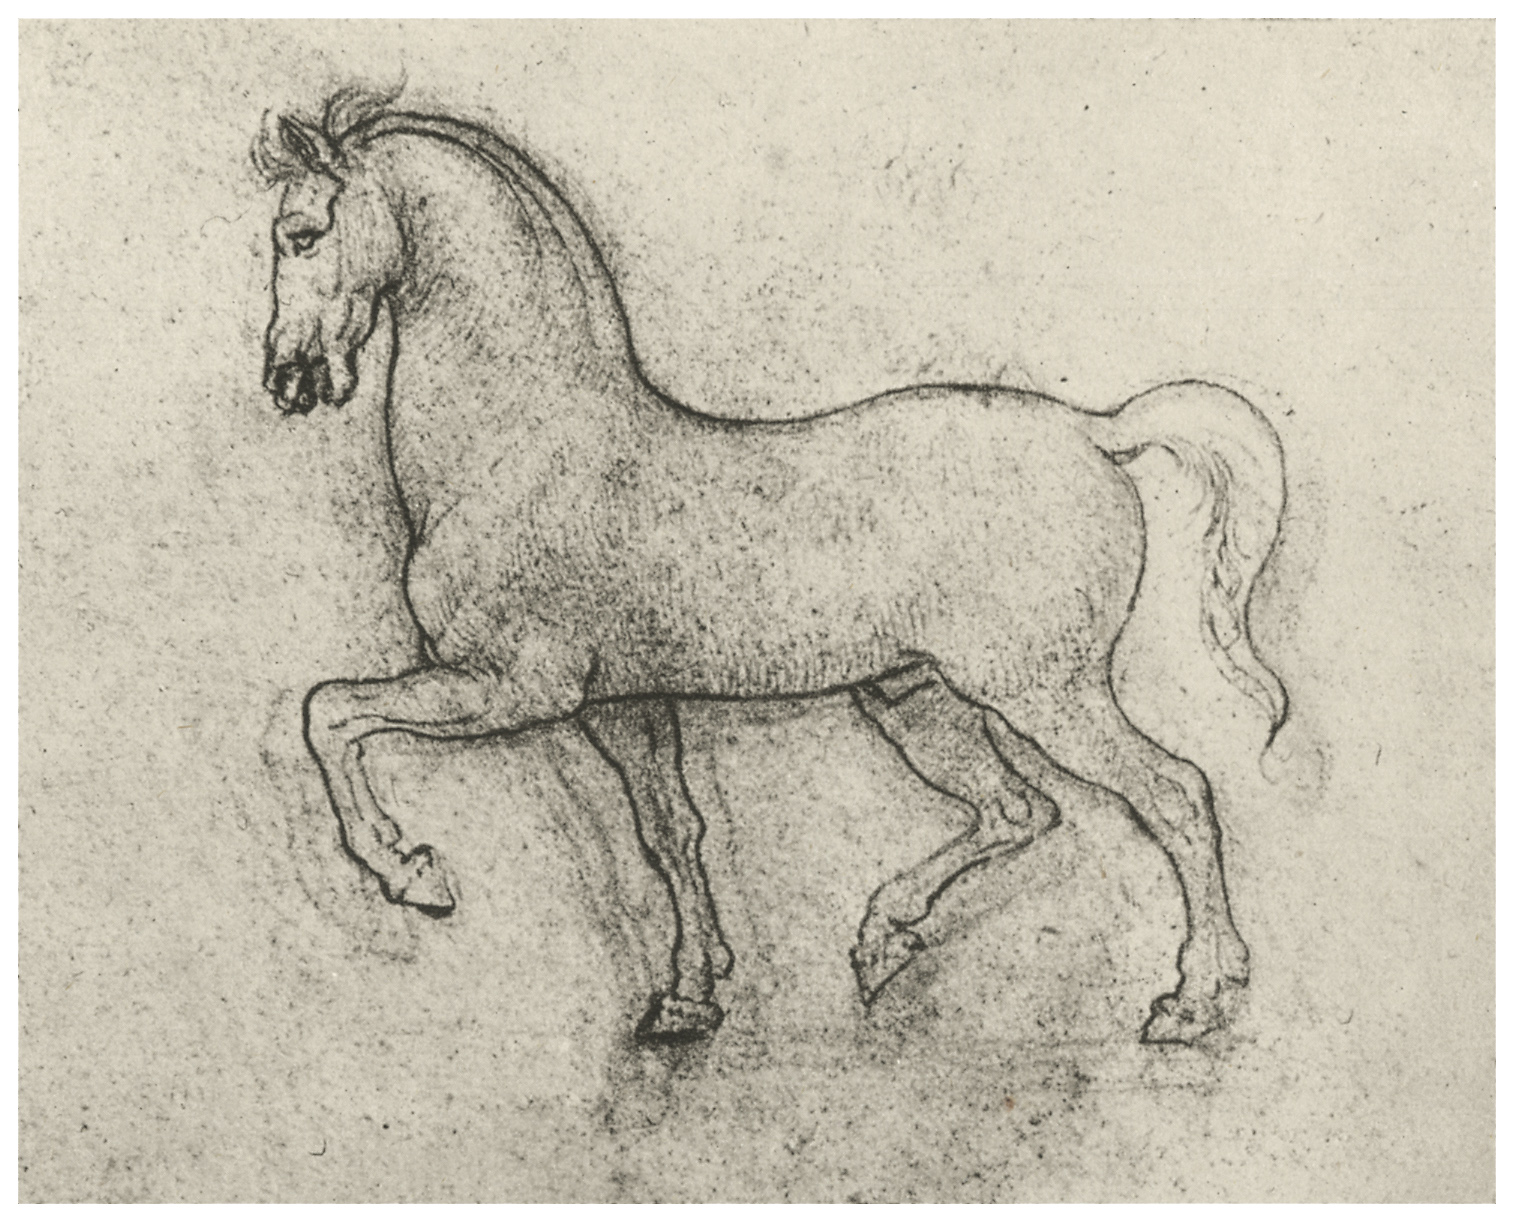 Leonardo da Vinci - Drawings - Animals - Horses - Pose.JPG